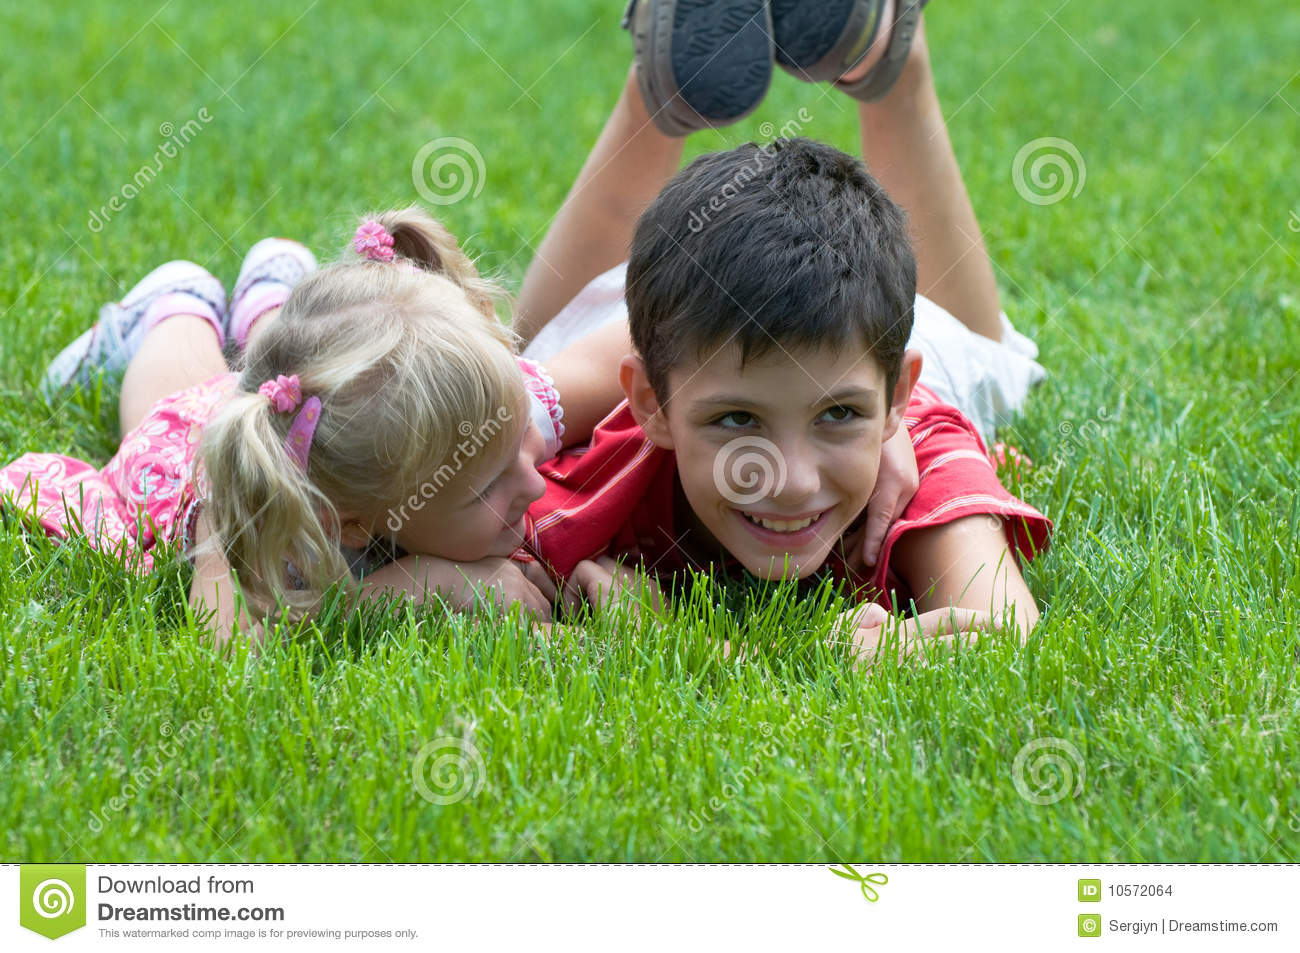 Little girl and boy at the park